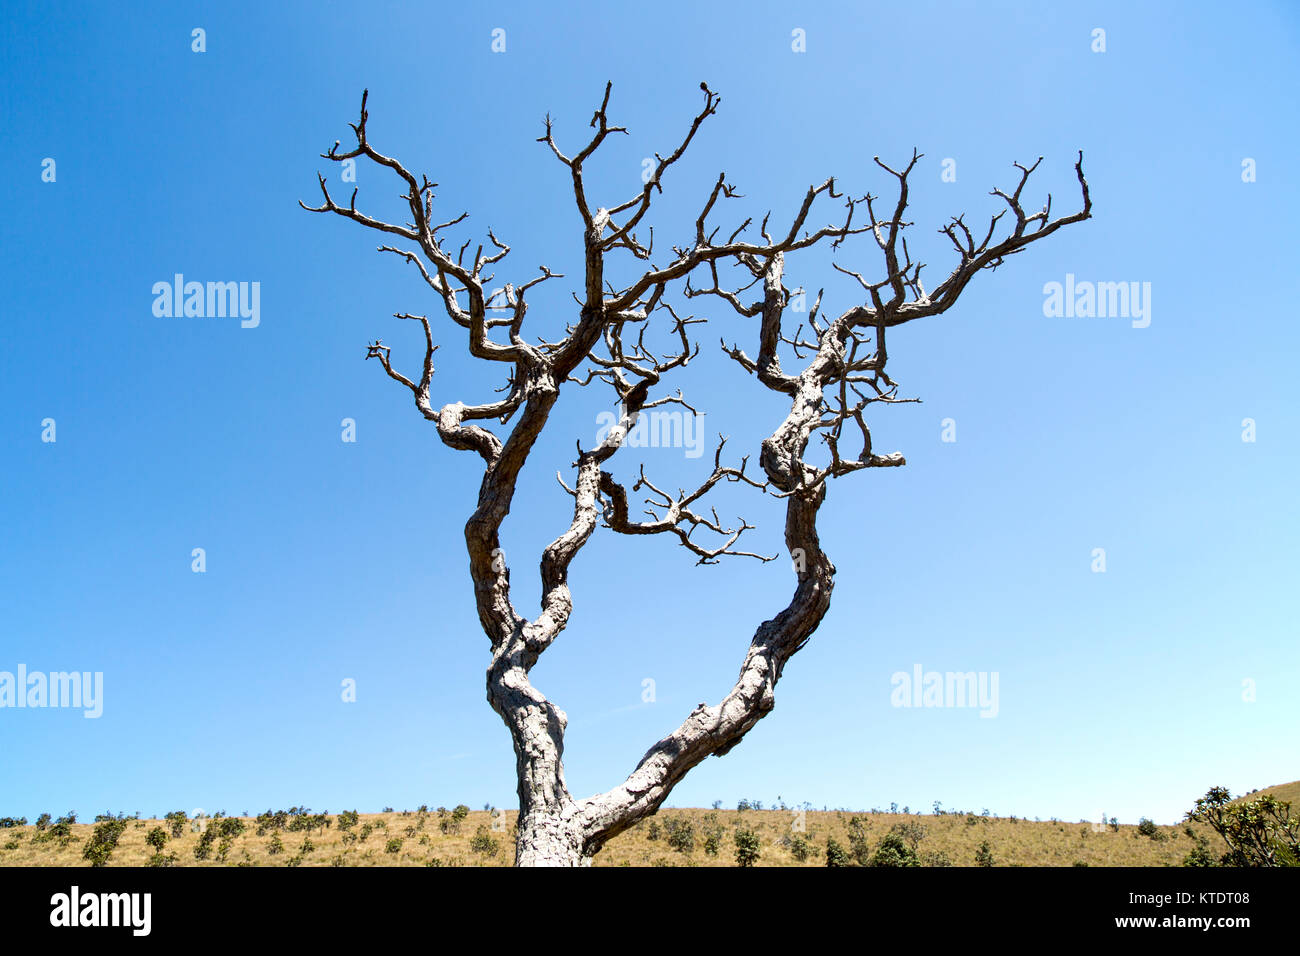 Dramatic dead Rhododendron arboreum tree branches blue sky, Horton Plains National Park, Central Province, Sri Lanka, - Stock Image